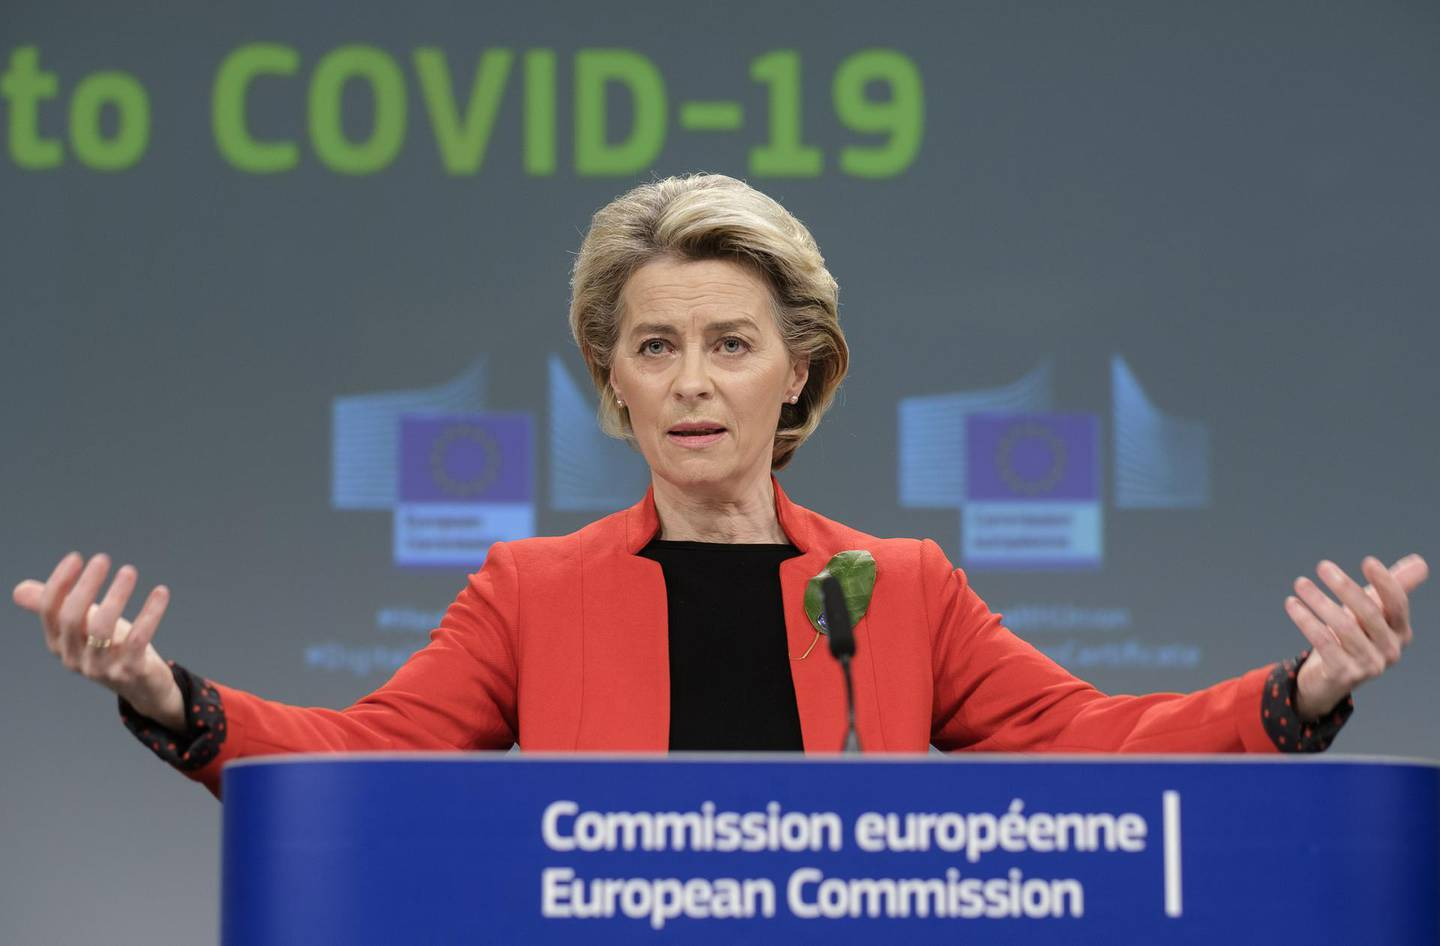 Ursula von der Leyen, European Commission president, gestures as she speaks during a news conference in Brussels, Belgium, on Wednesday, March 17, 2021. The European Union will propose a certificate that could ease travel for those who have taken EU-approved vaccines as well as others, like the Chinese and Russian shots, that have only received emergency national authorizations. Photographer: Thierry Monasse/Bloomberg